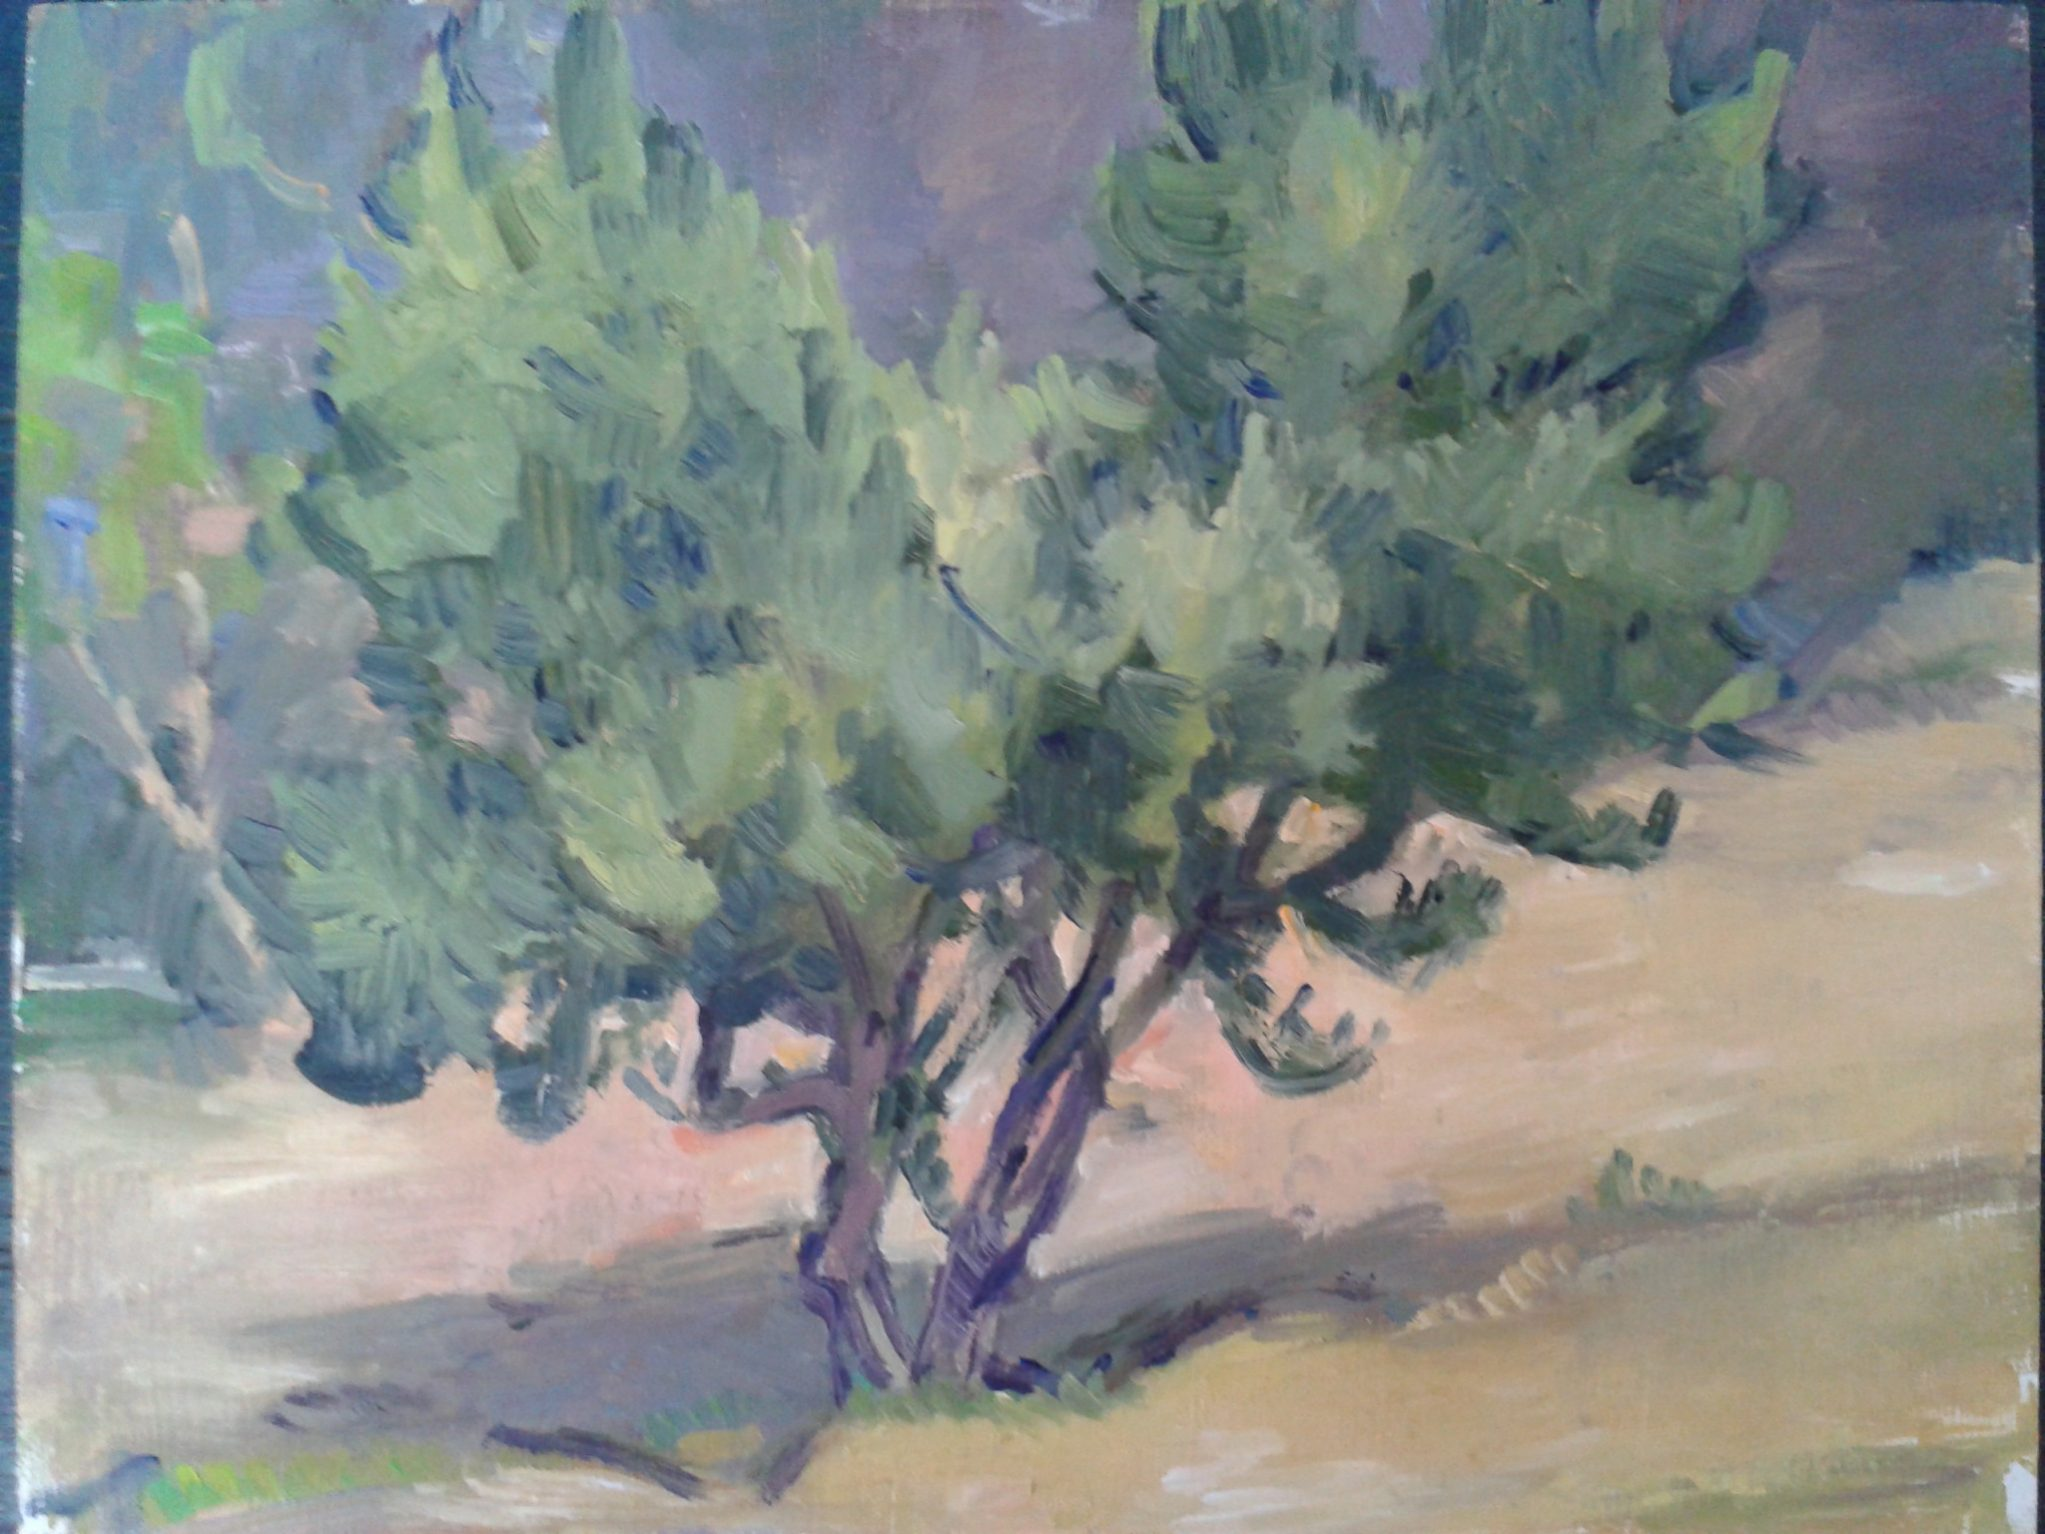 Open call for teachers and artists: <br>Host your art lessons, projects and meetings in Ikaria